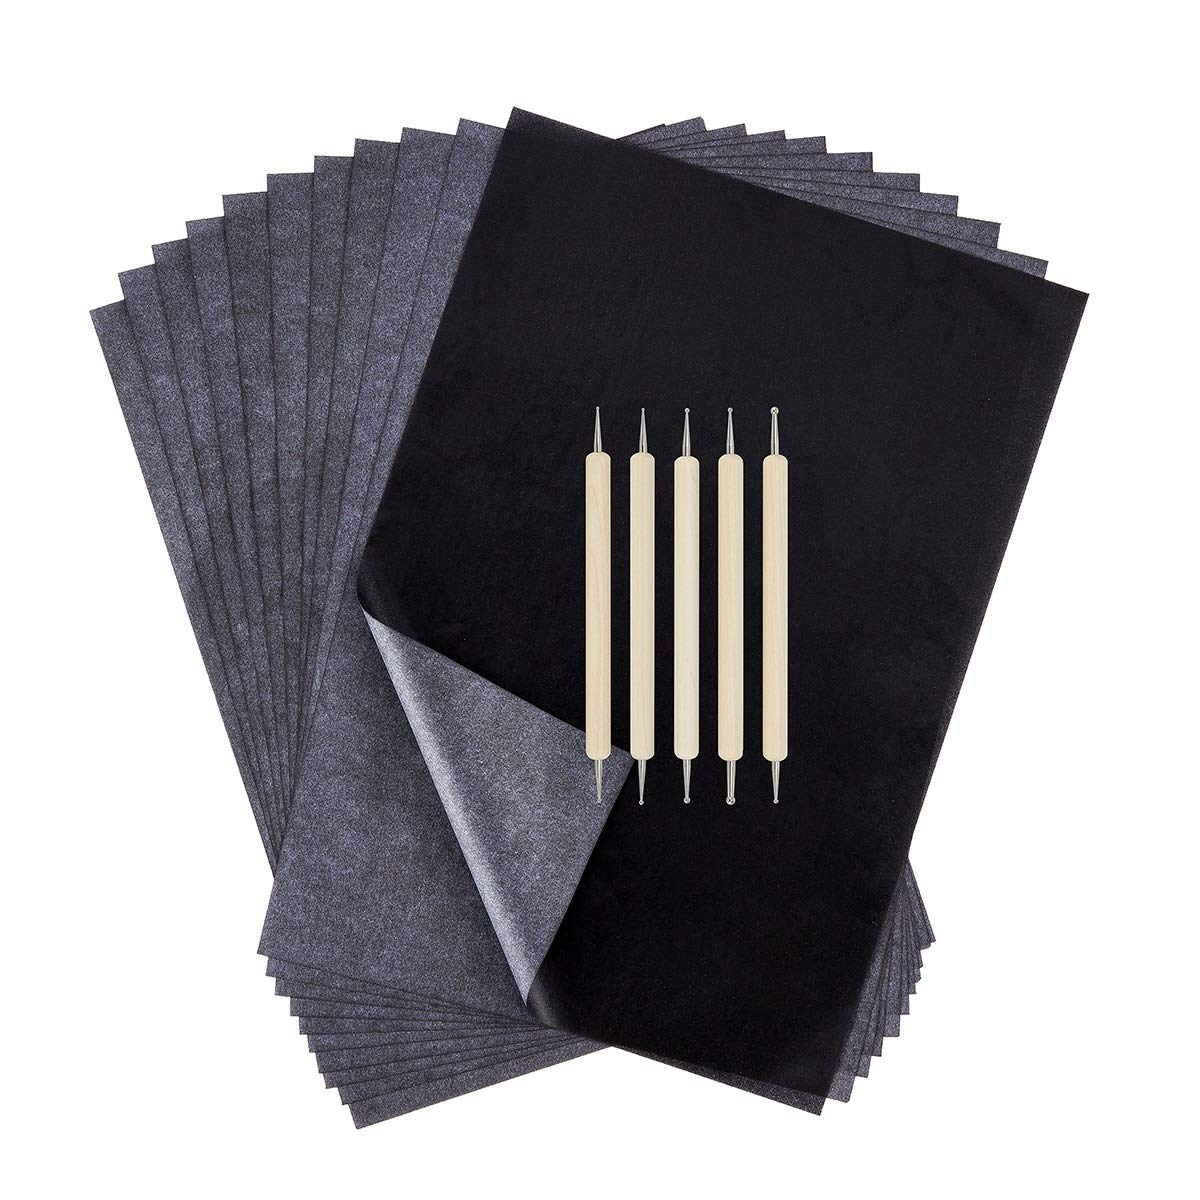 200 Sheets Transfer Tracing Paper Carbon Graphite Paper and 5 Pcs Embossing Styluses Stylus Dotting Tools for Paper, Metal, Glass, Carving, DIY Wood Burning Transfer Craft Suptee